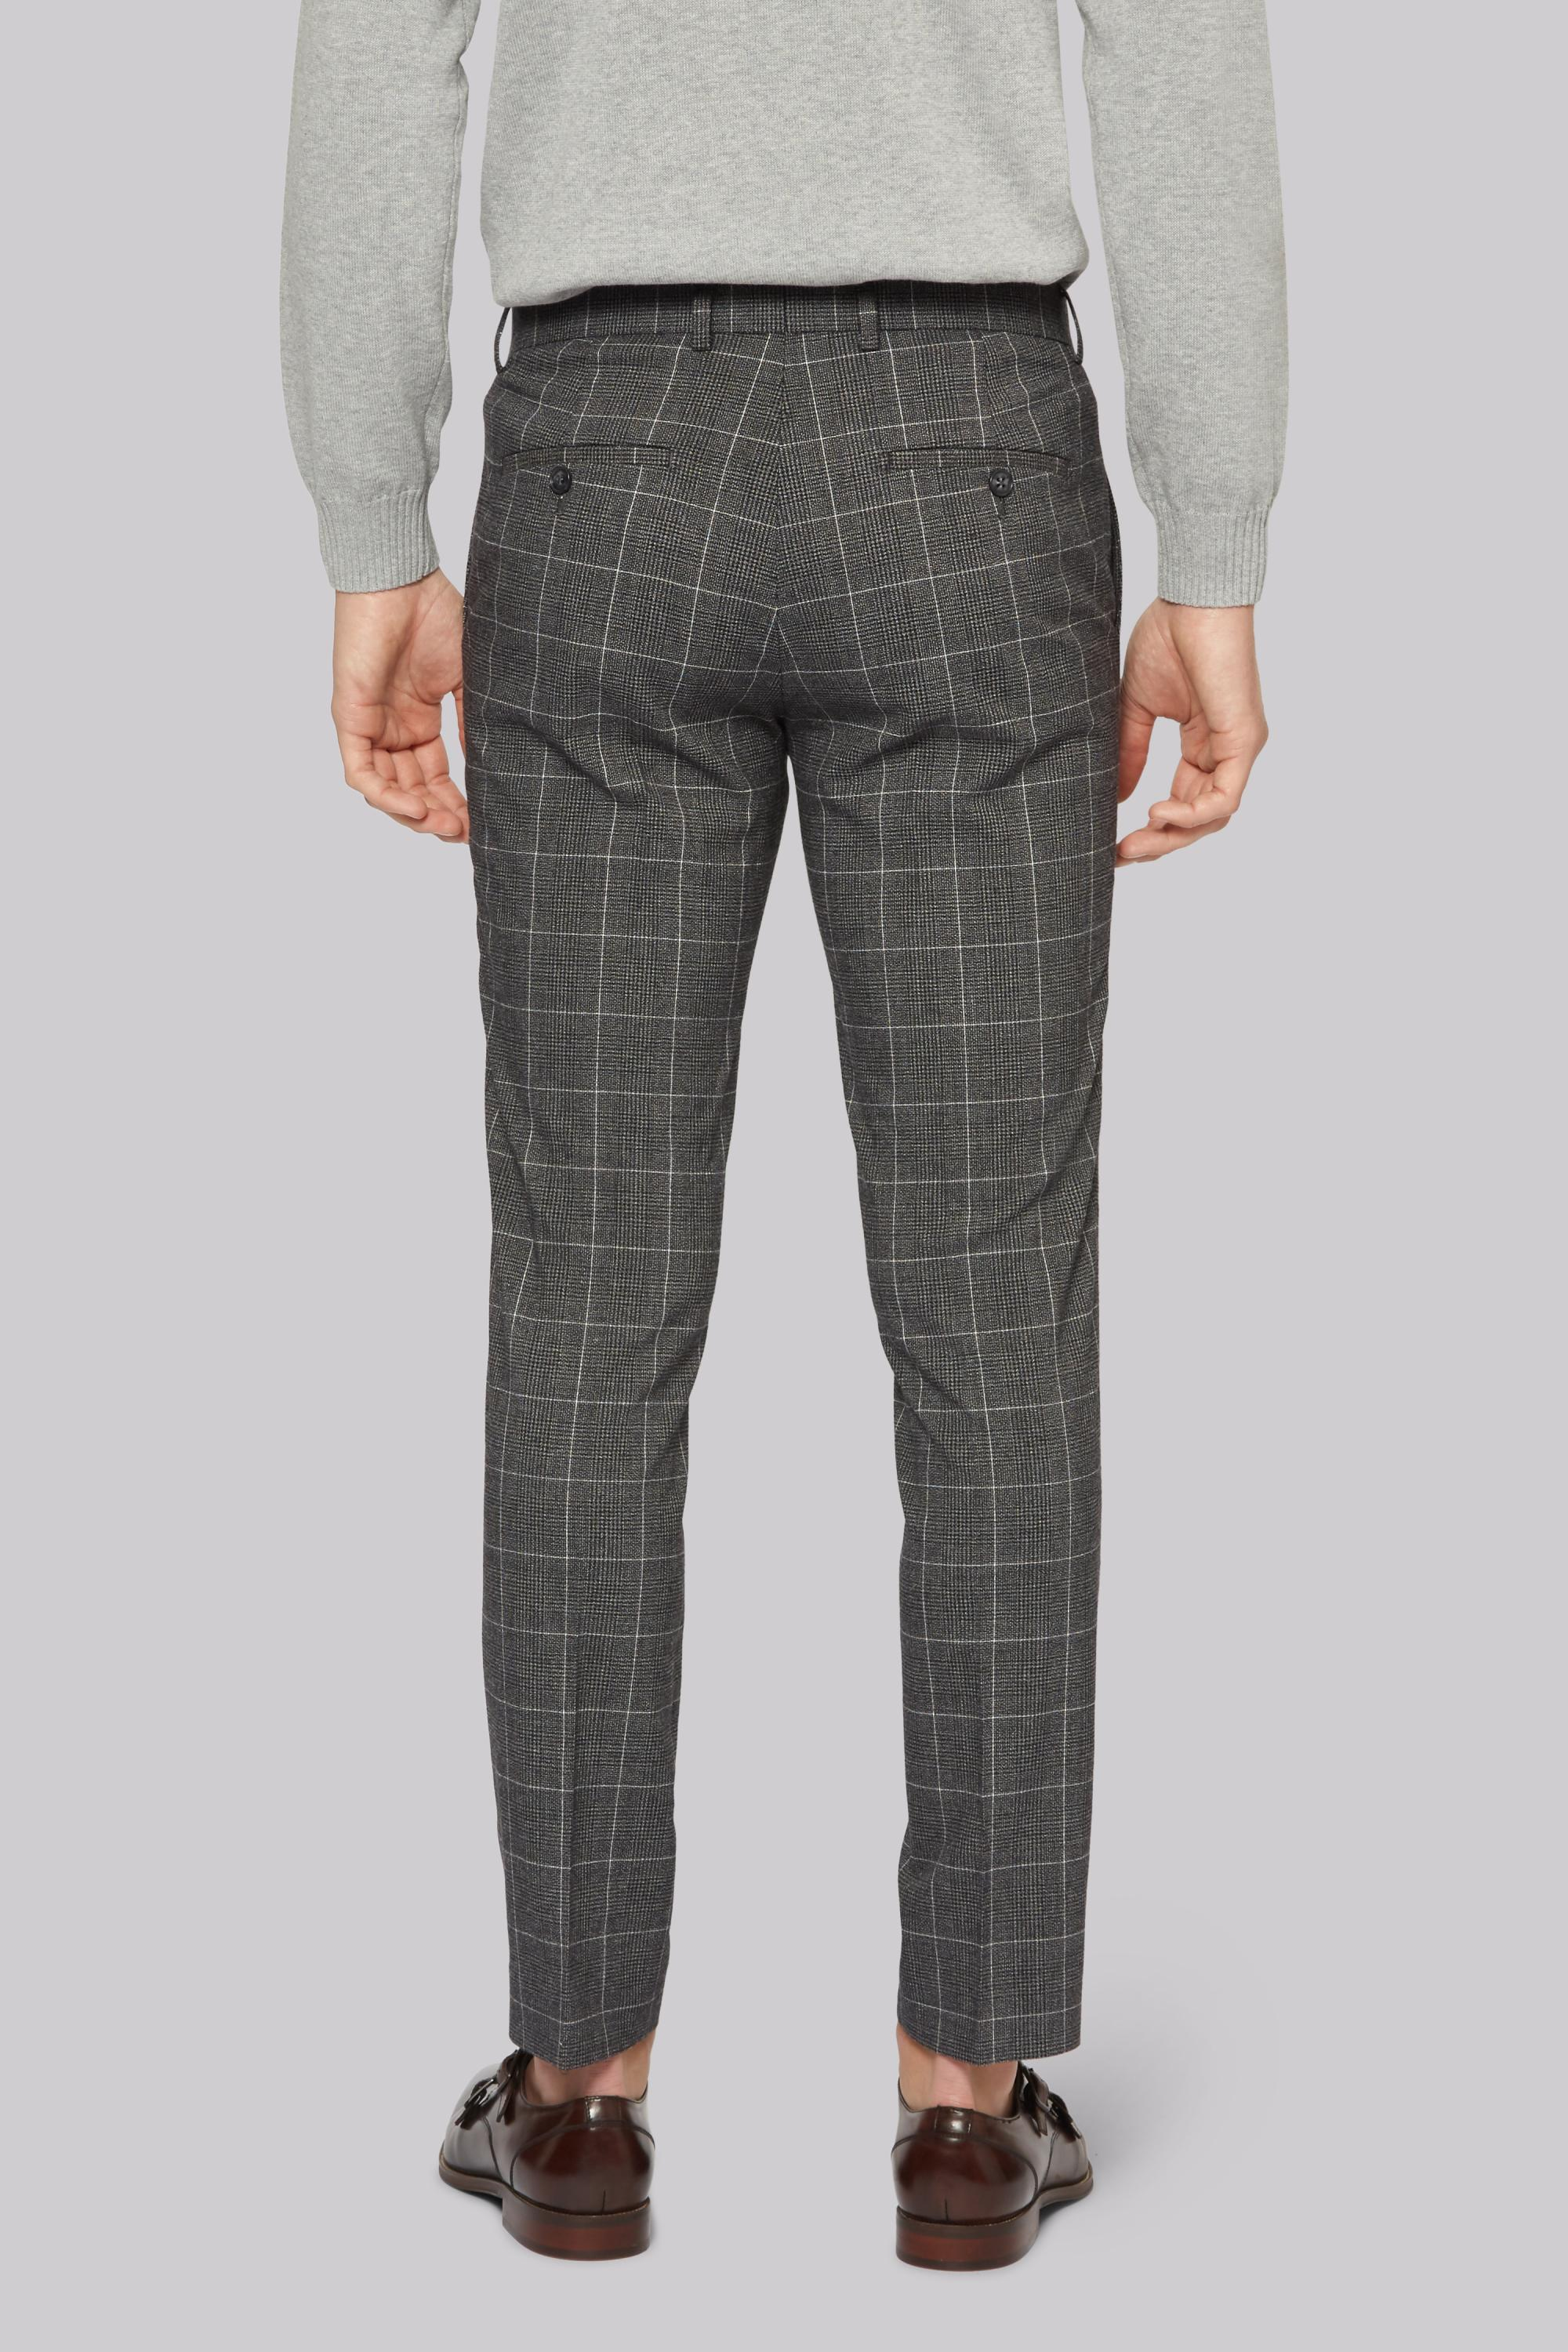 Moss London Synthetic Skinny Fit Charcoal White Check Trousers in Grey for Men